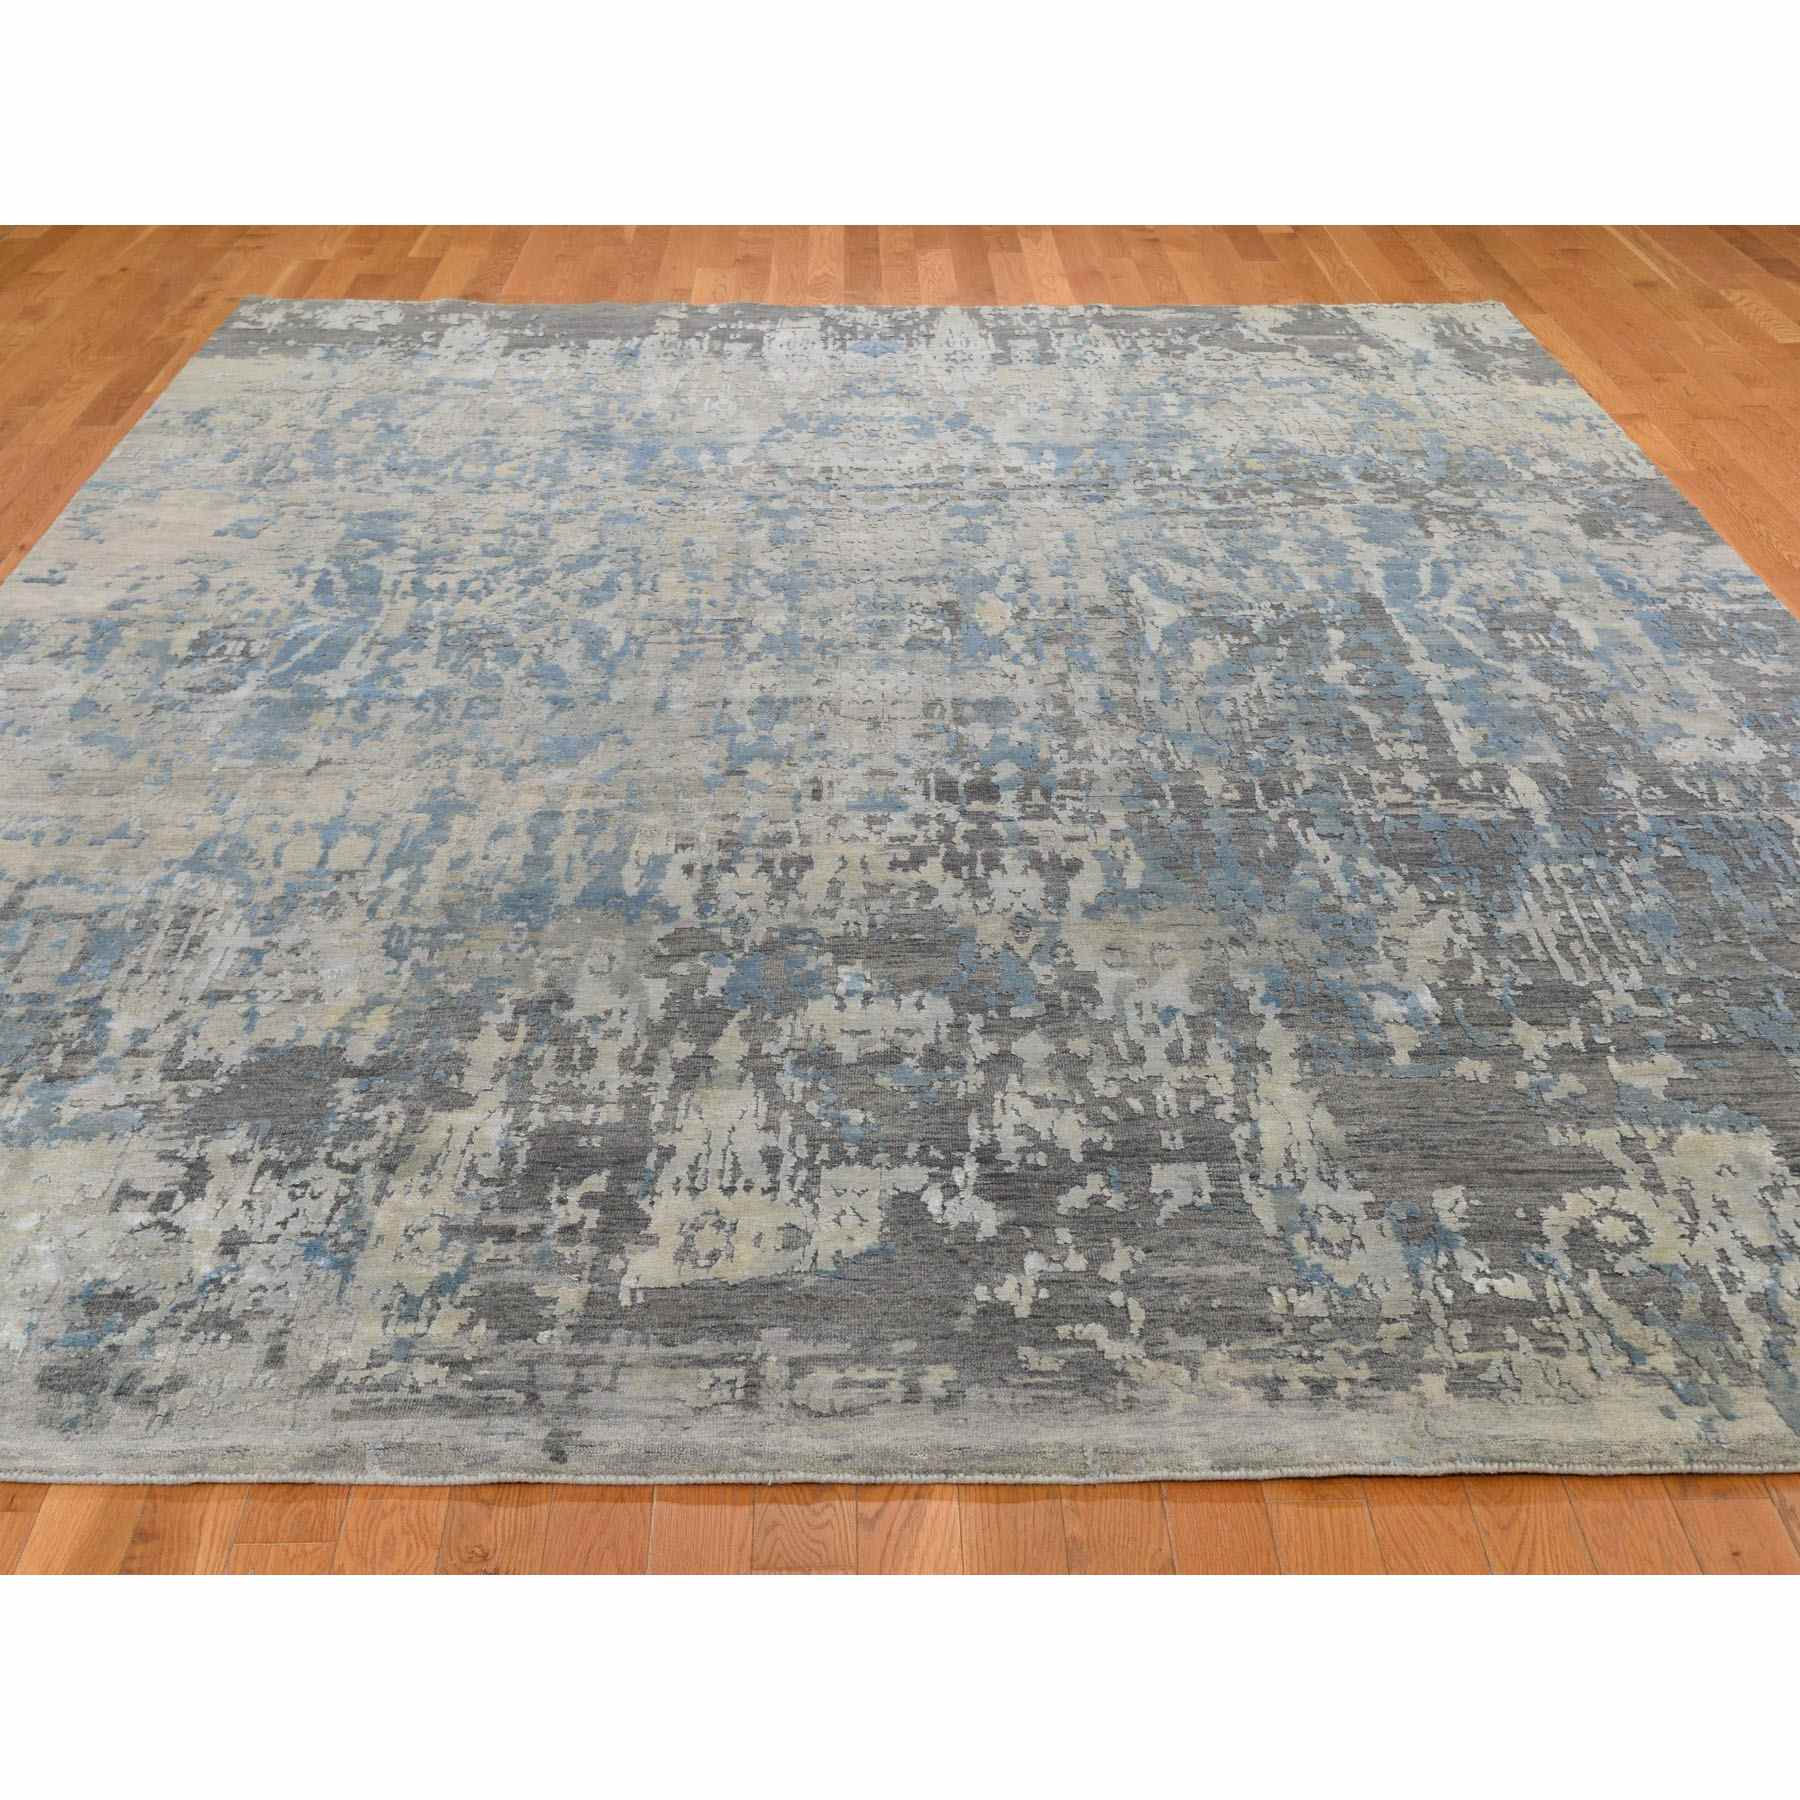 9-x11-9  Blue Abstract Design Wool And Pure Silk Denser Weave Hand Knotted Modern Rug